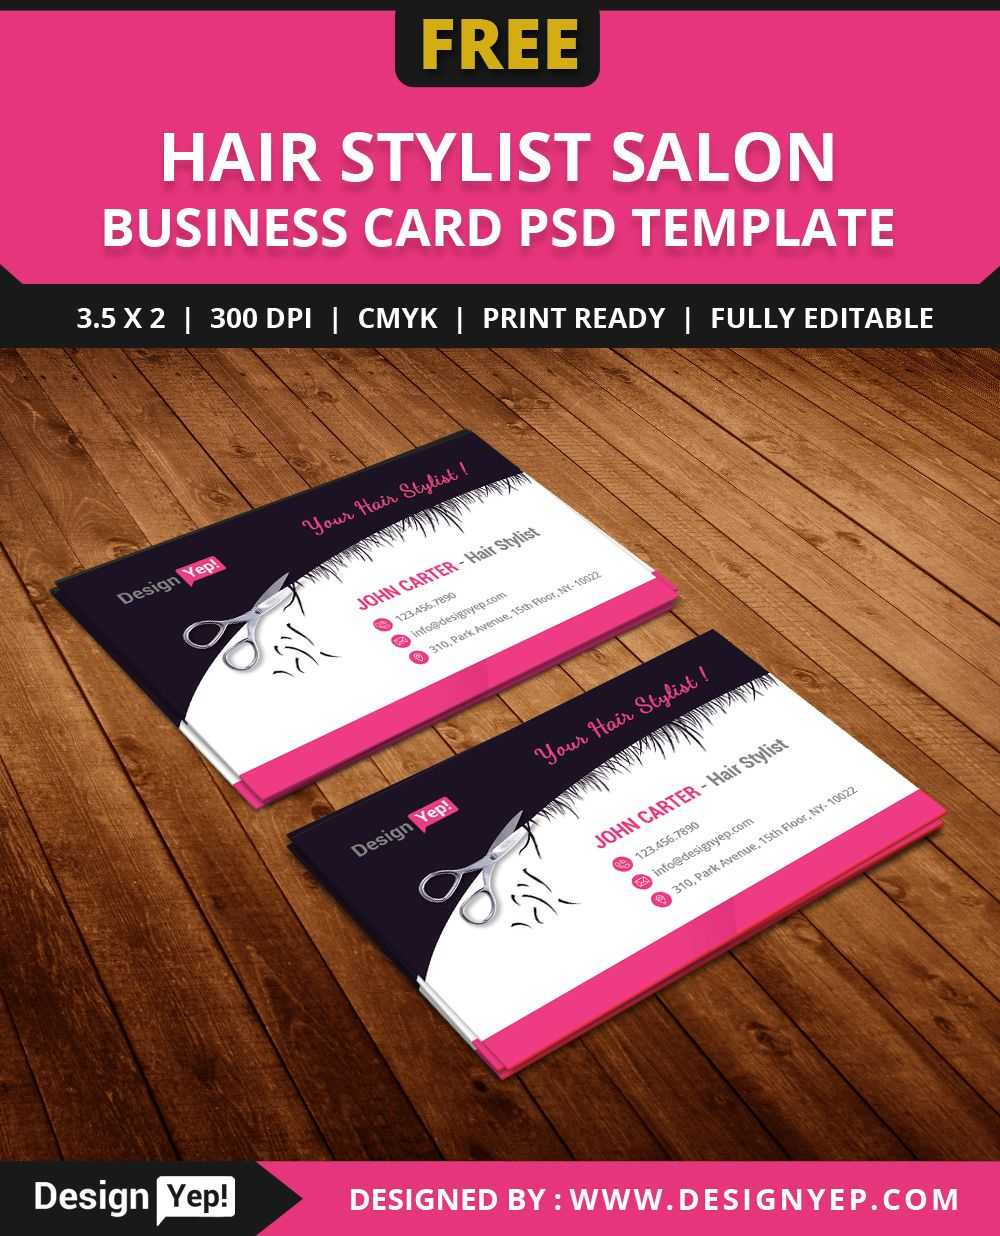 Free Hair Stylist Salon Business Card Template Psd | Free For Hairdresser Business Card Templates Free